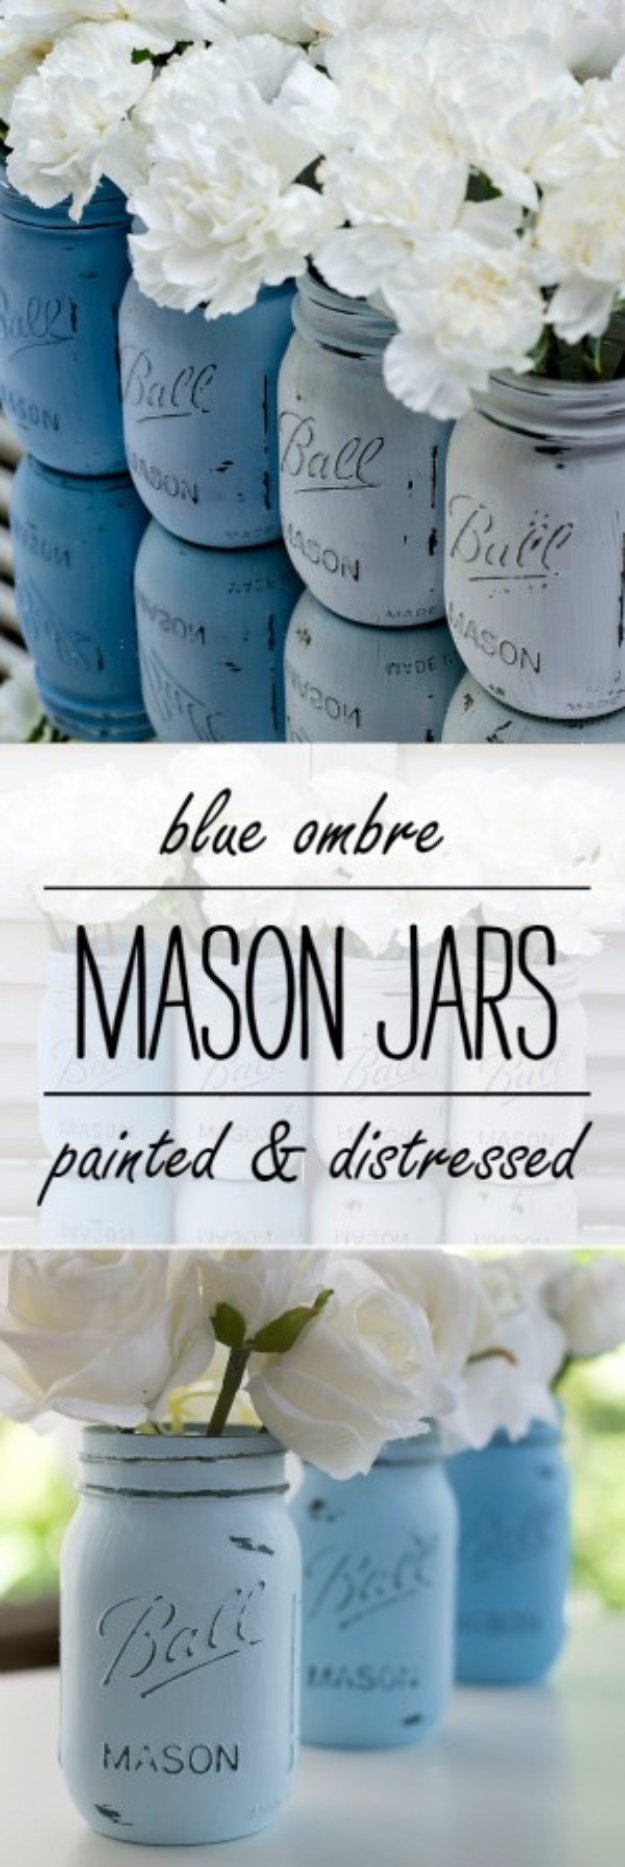 DIY Mason Jar Vases - Painted And Distressed Blue Ombre Mason Jars - Best Vase Projects and Ideas for Mason Jars - Painted, Wedding, Hanging Flowers, Centerpiece, Rustic Burlap, Ribbon and Twine